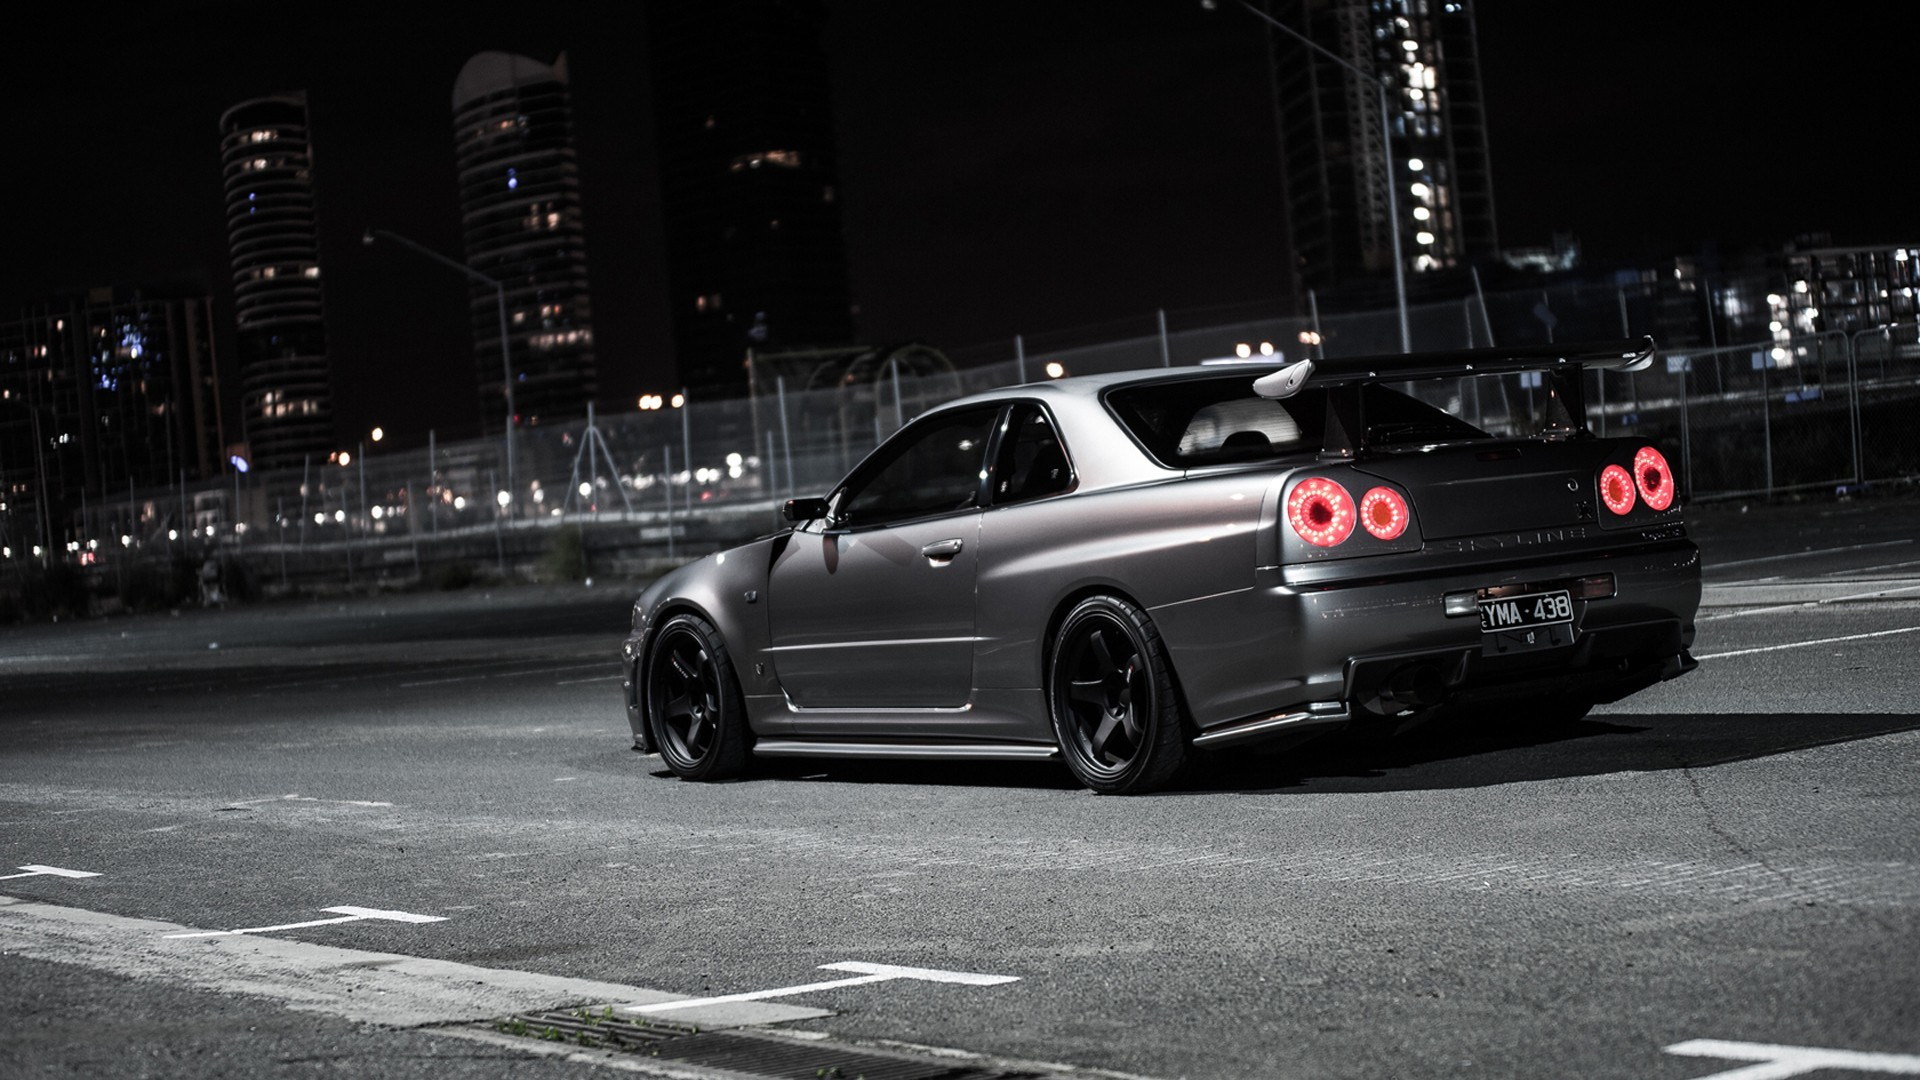 1920x1080 Nissan Skyline GT R R34 Night » Holy Drift   HD Car Wallpapers